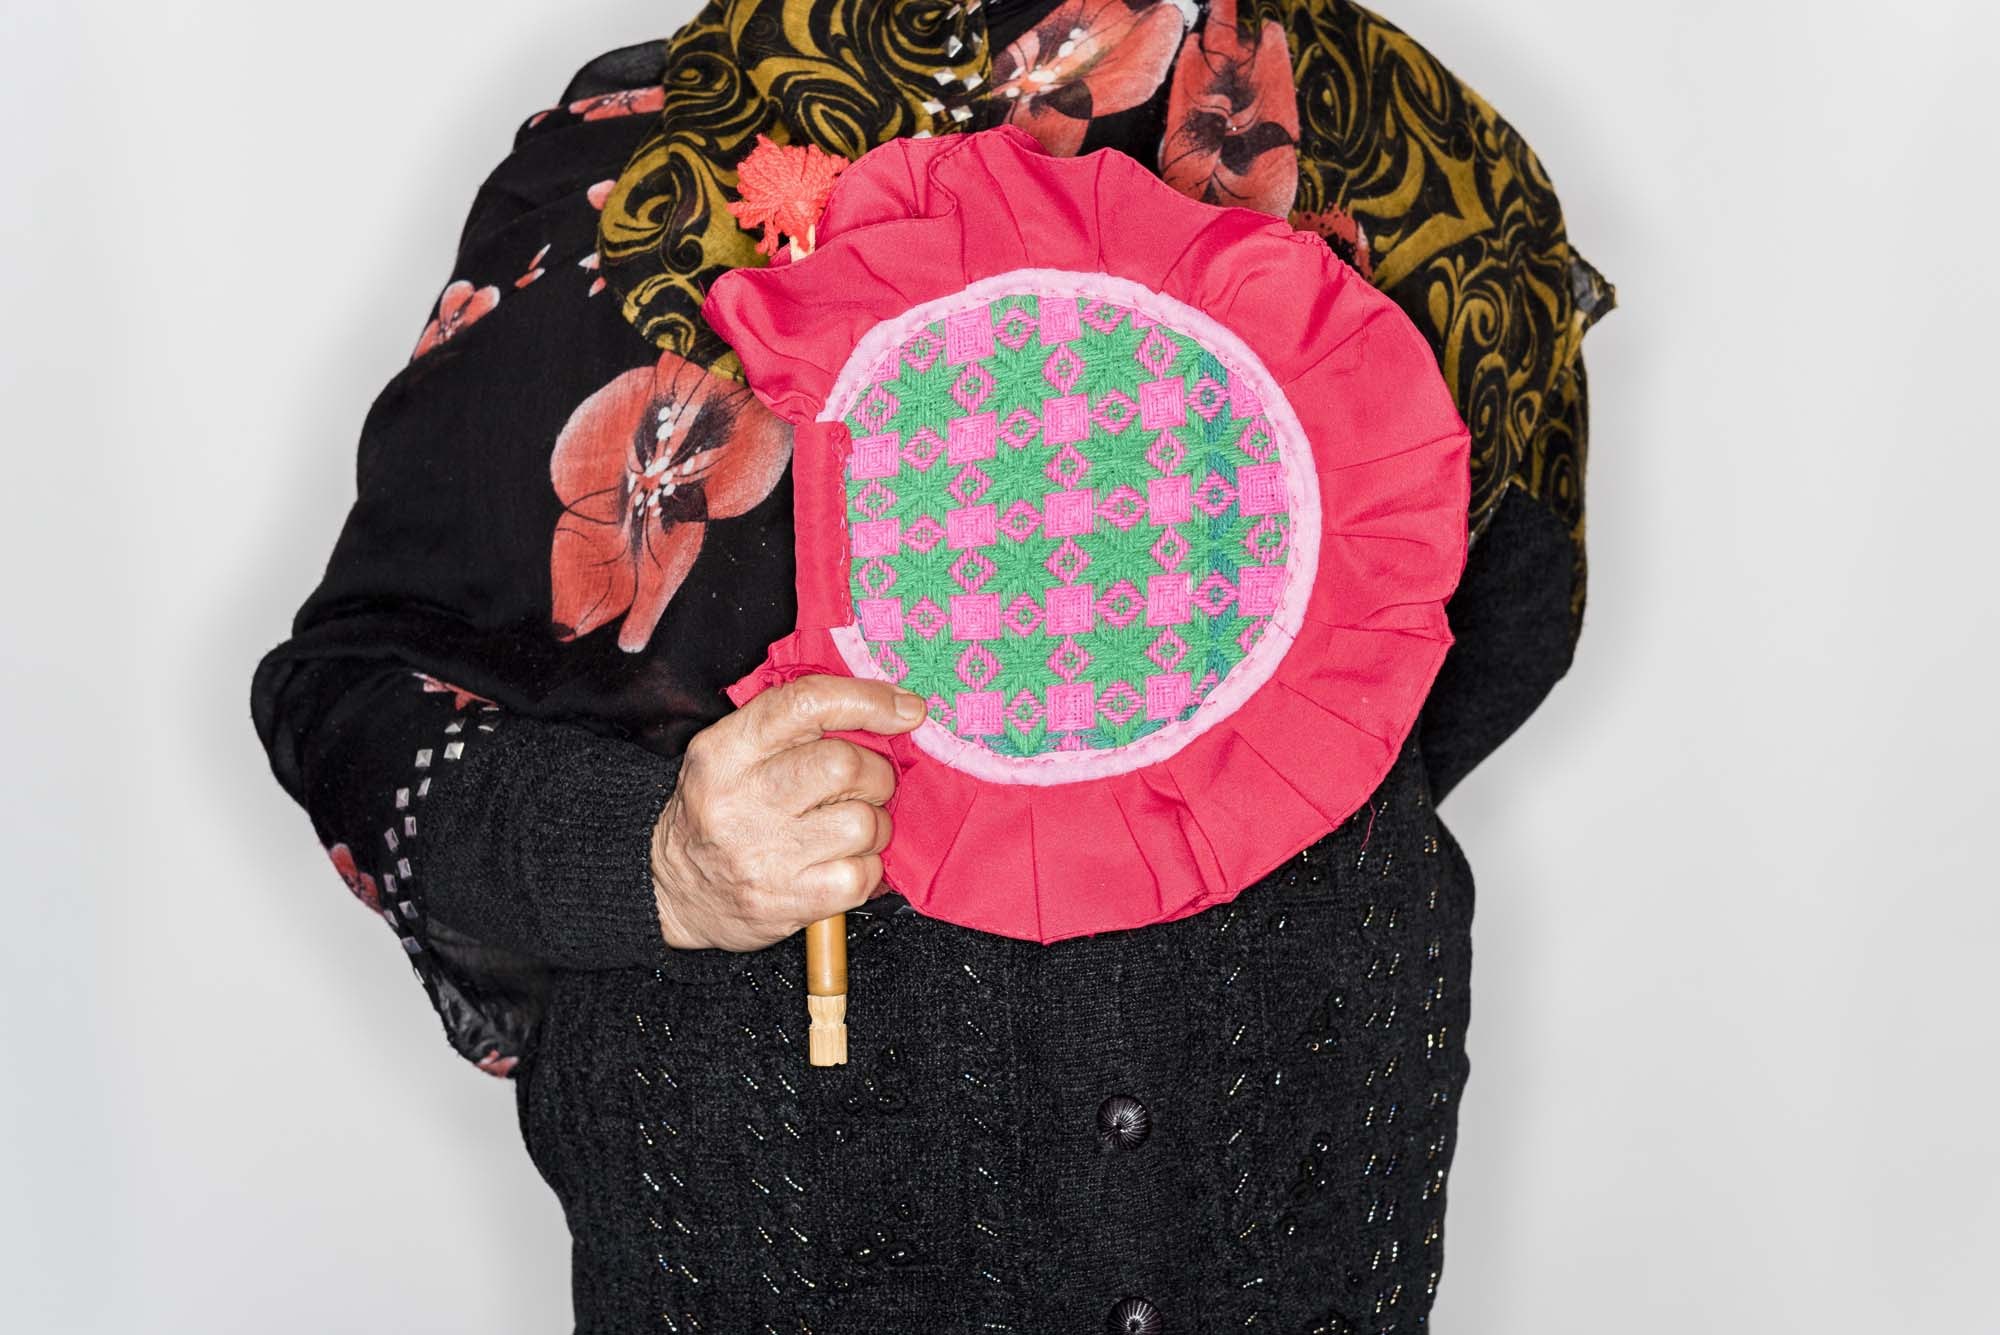 a cropped image of a woman holding a large, round pink fan